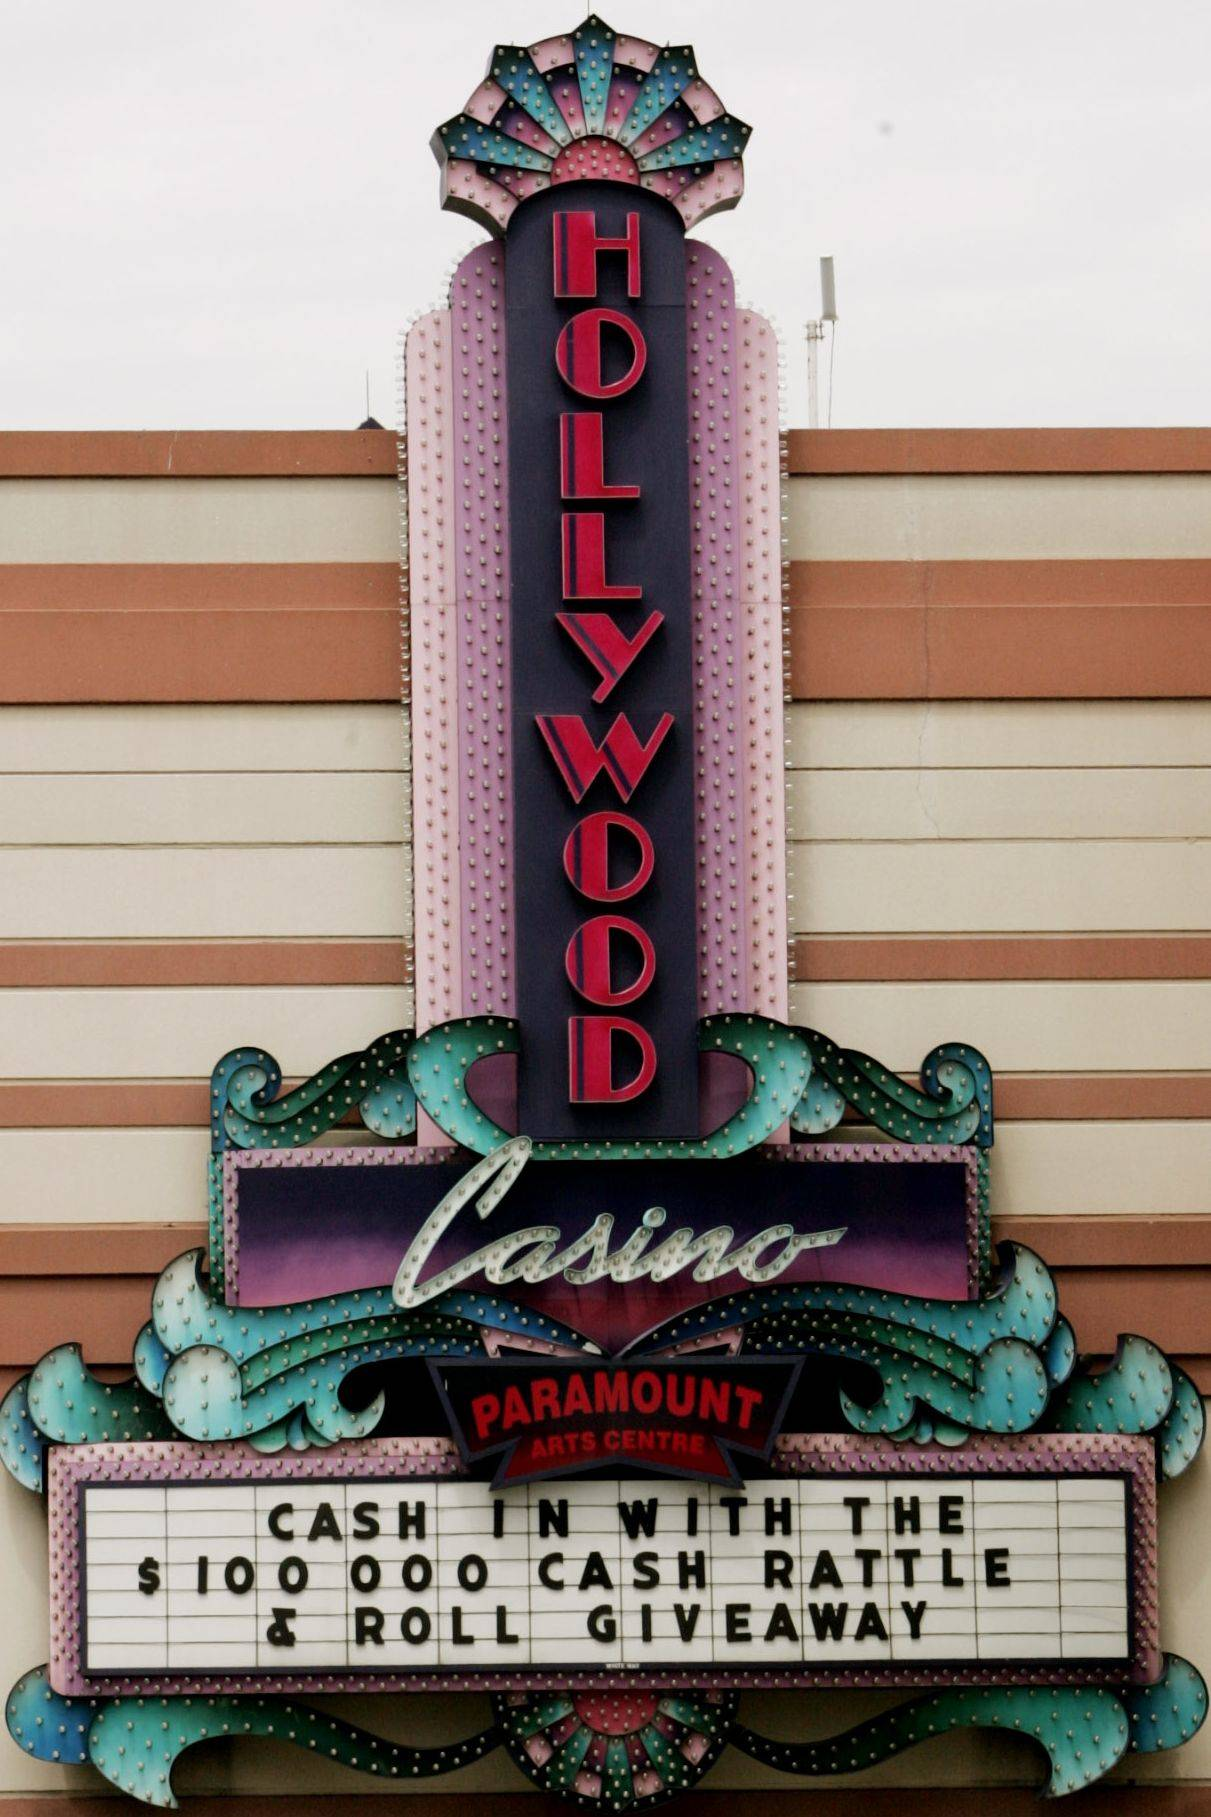 Hollywood Casino in Aurora